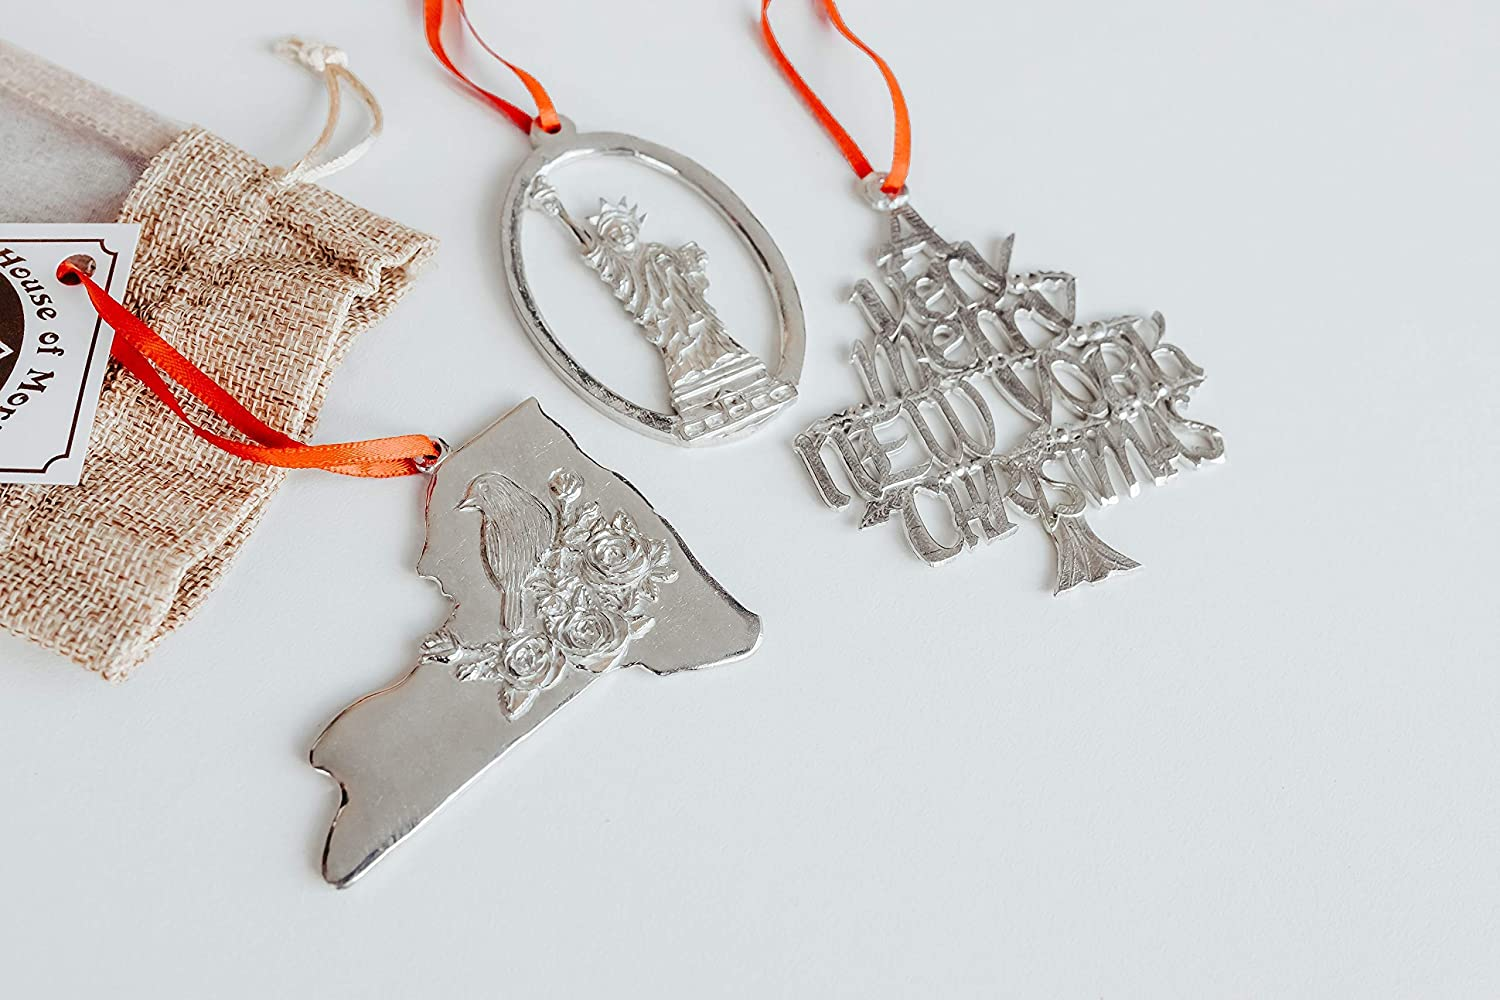 Handmade New York Ornaments for Christmas Tree - NY Metal Souvenirs and Gifts - Big Apple Gift Set for Traveler